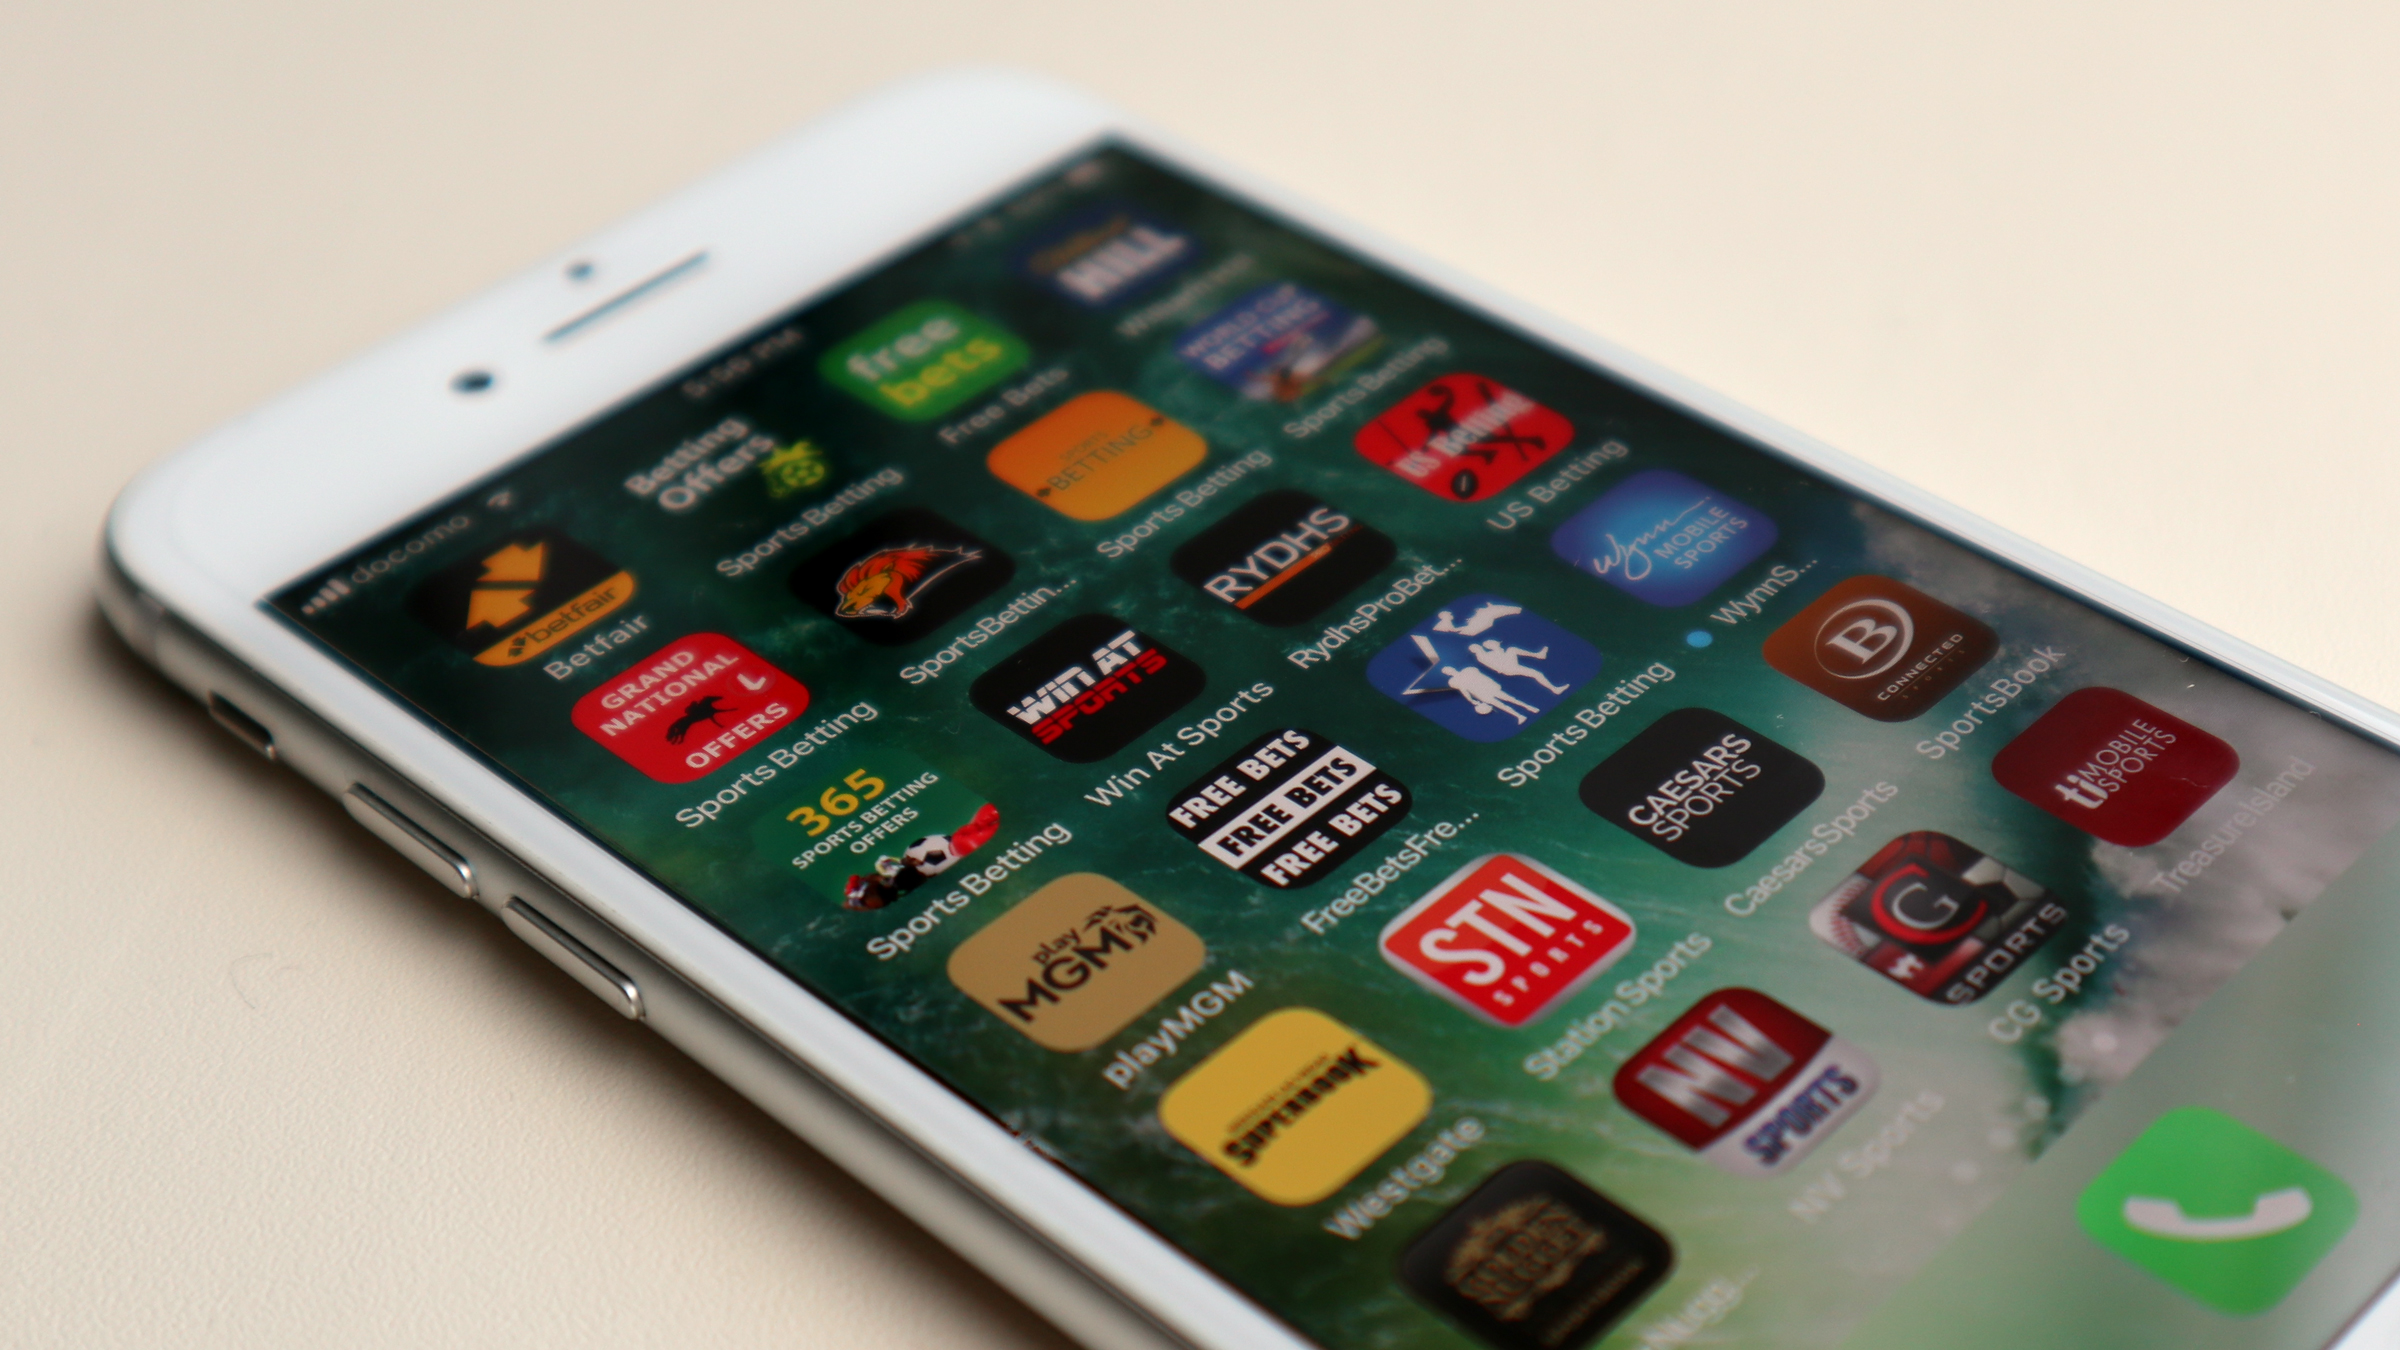 Access To Sports Betting And Apps Could Lead To More Gambling Addiction